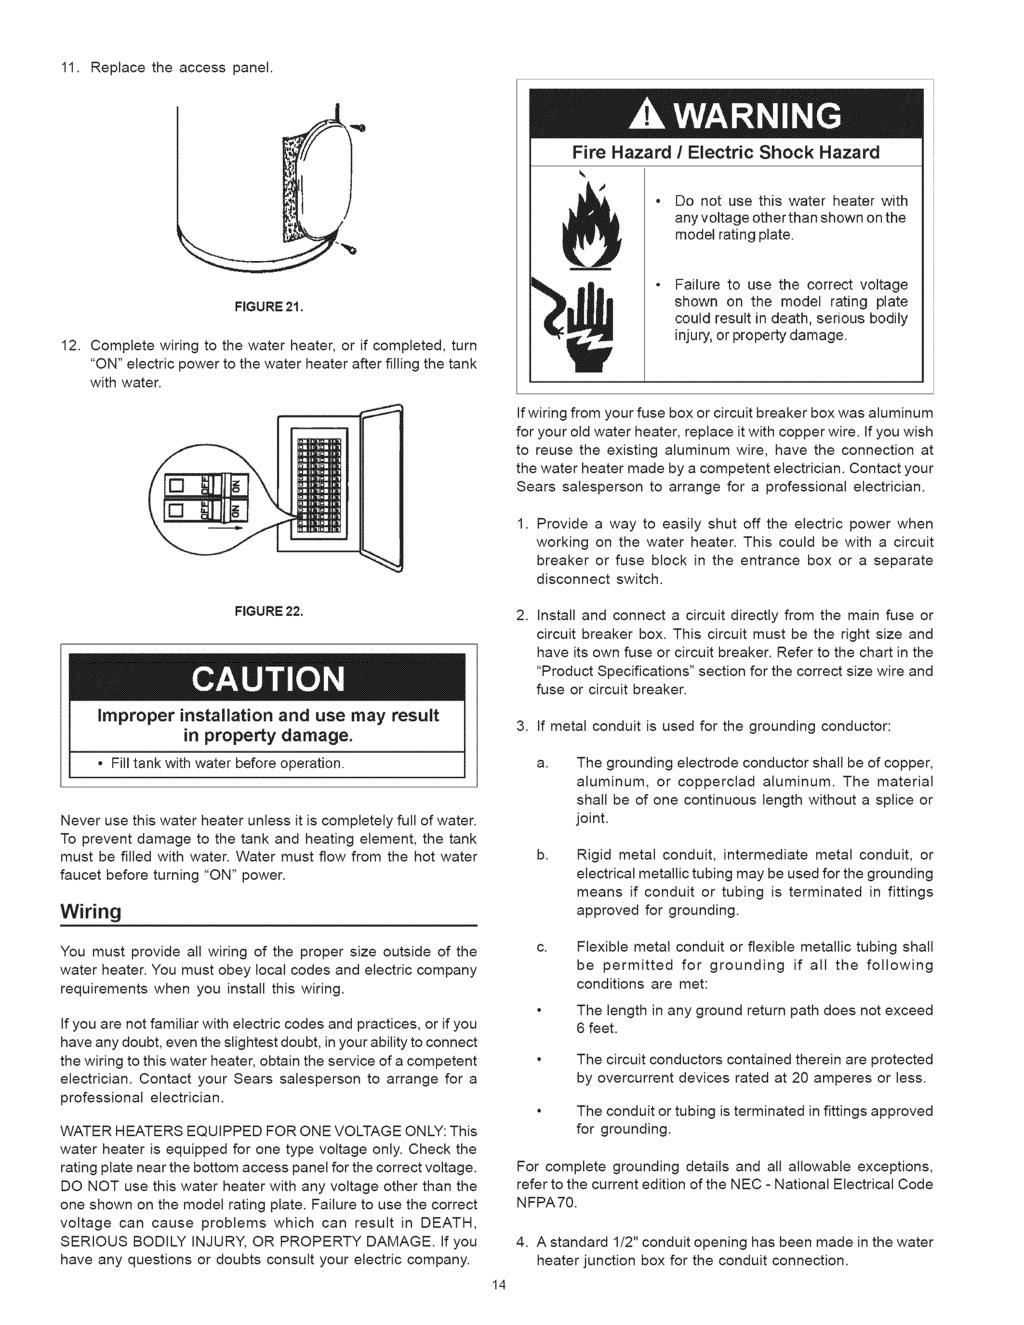 Power Misertm Electric Water Heater Pdf Fuse Box Fire Replace The Access Panel Hazard Shock Do Not Use